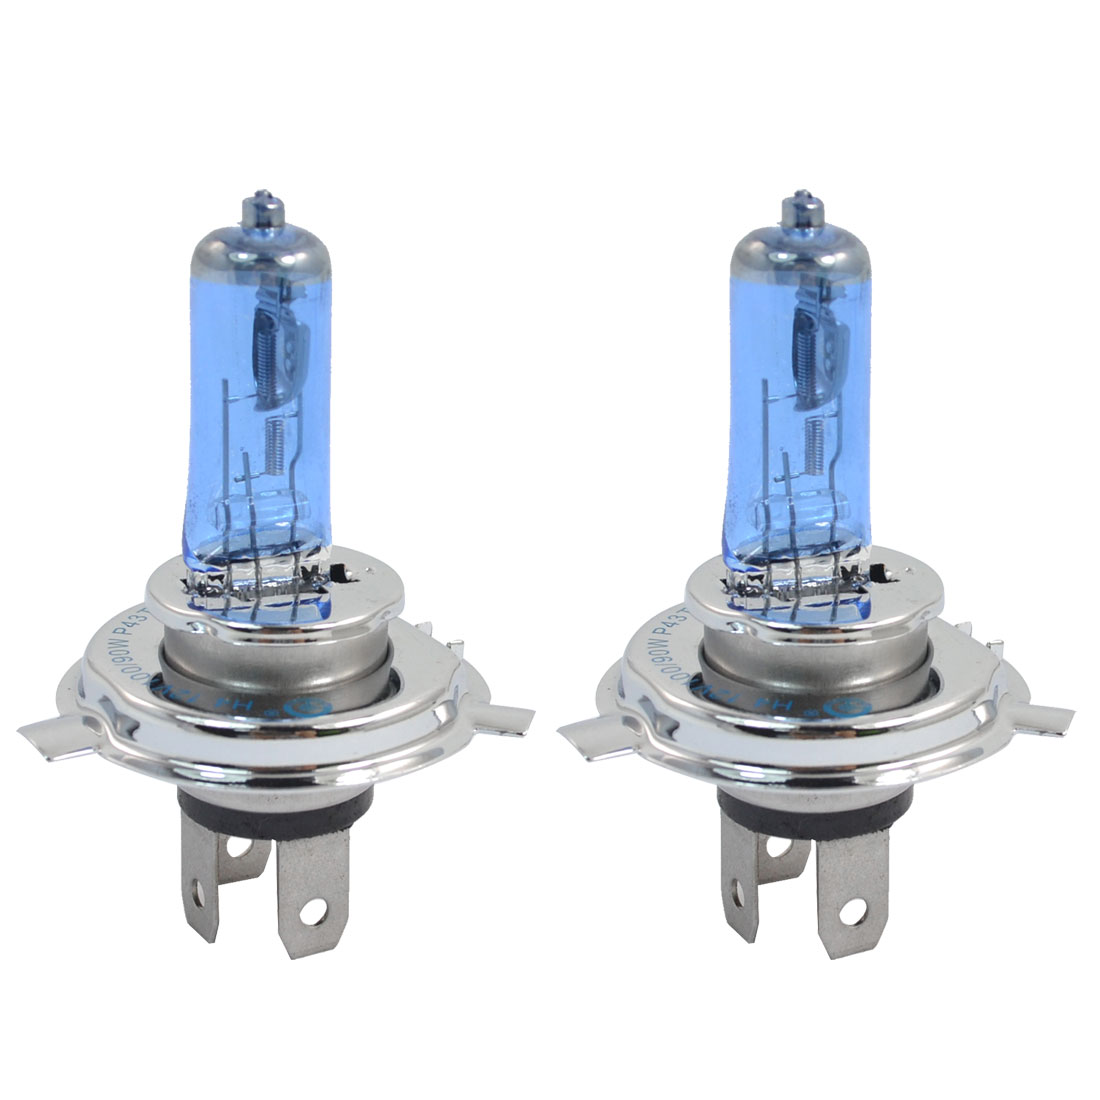 Pair H4 12V 100W/90W HID Xenon DRL Fog Light Driving Lamp White for Auto Car